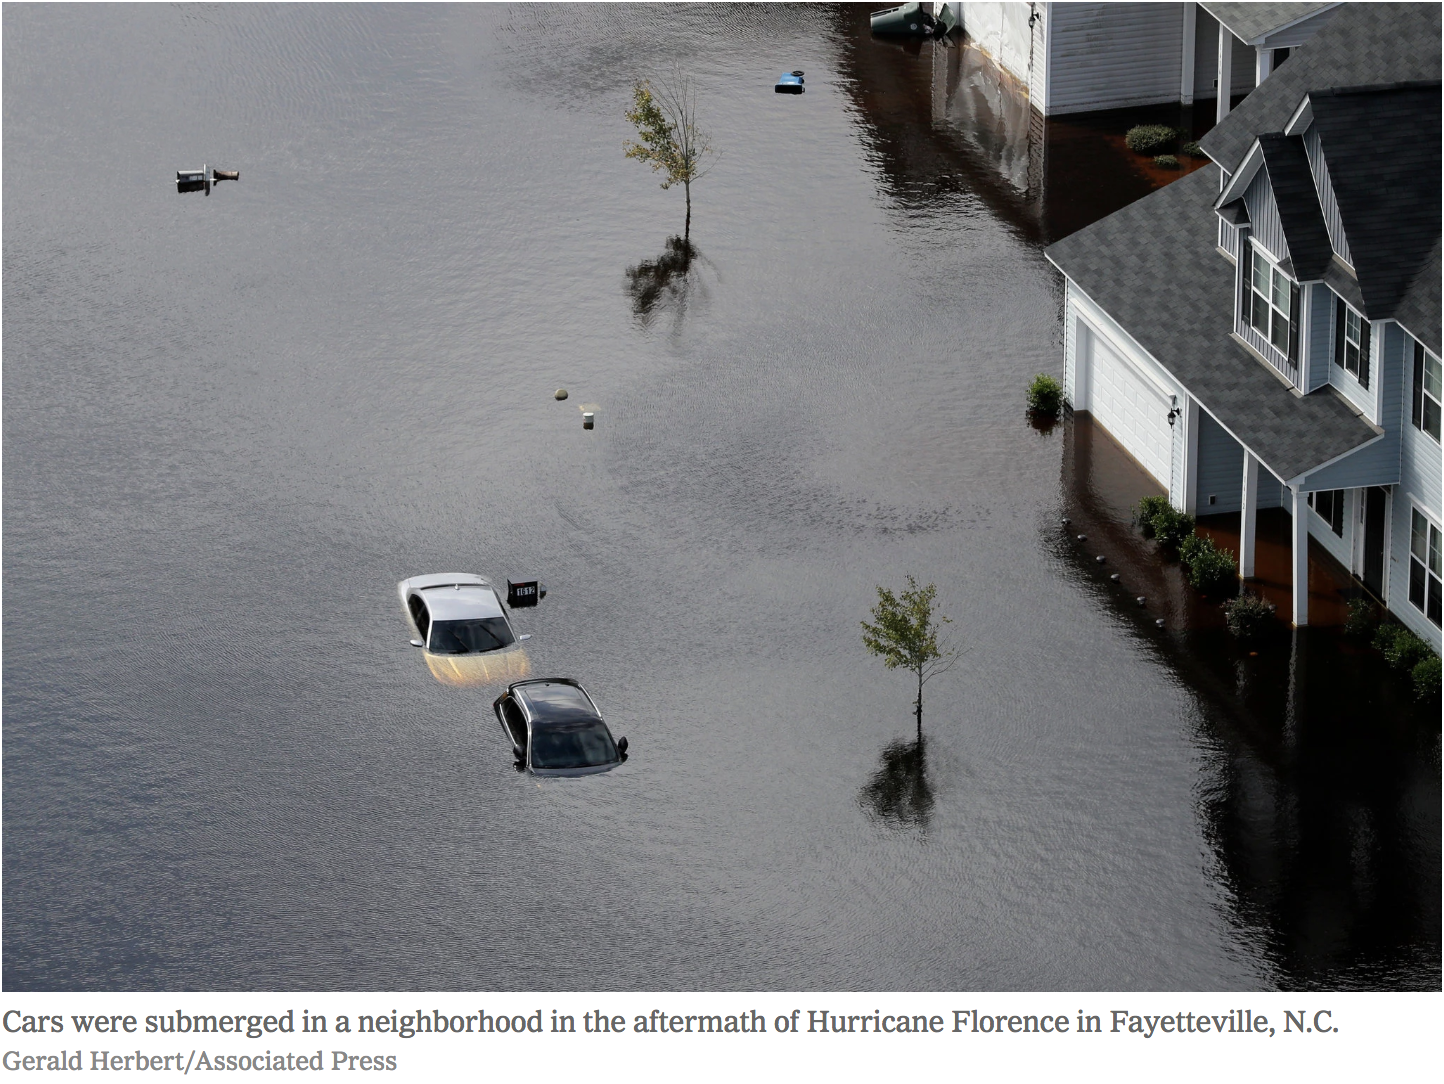 Flooding After Hurricane Florence in Fayetteville, North Carolina